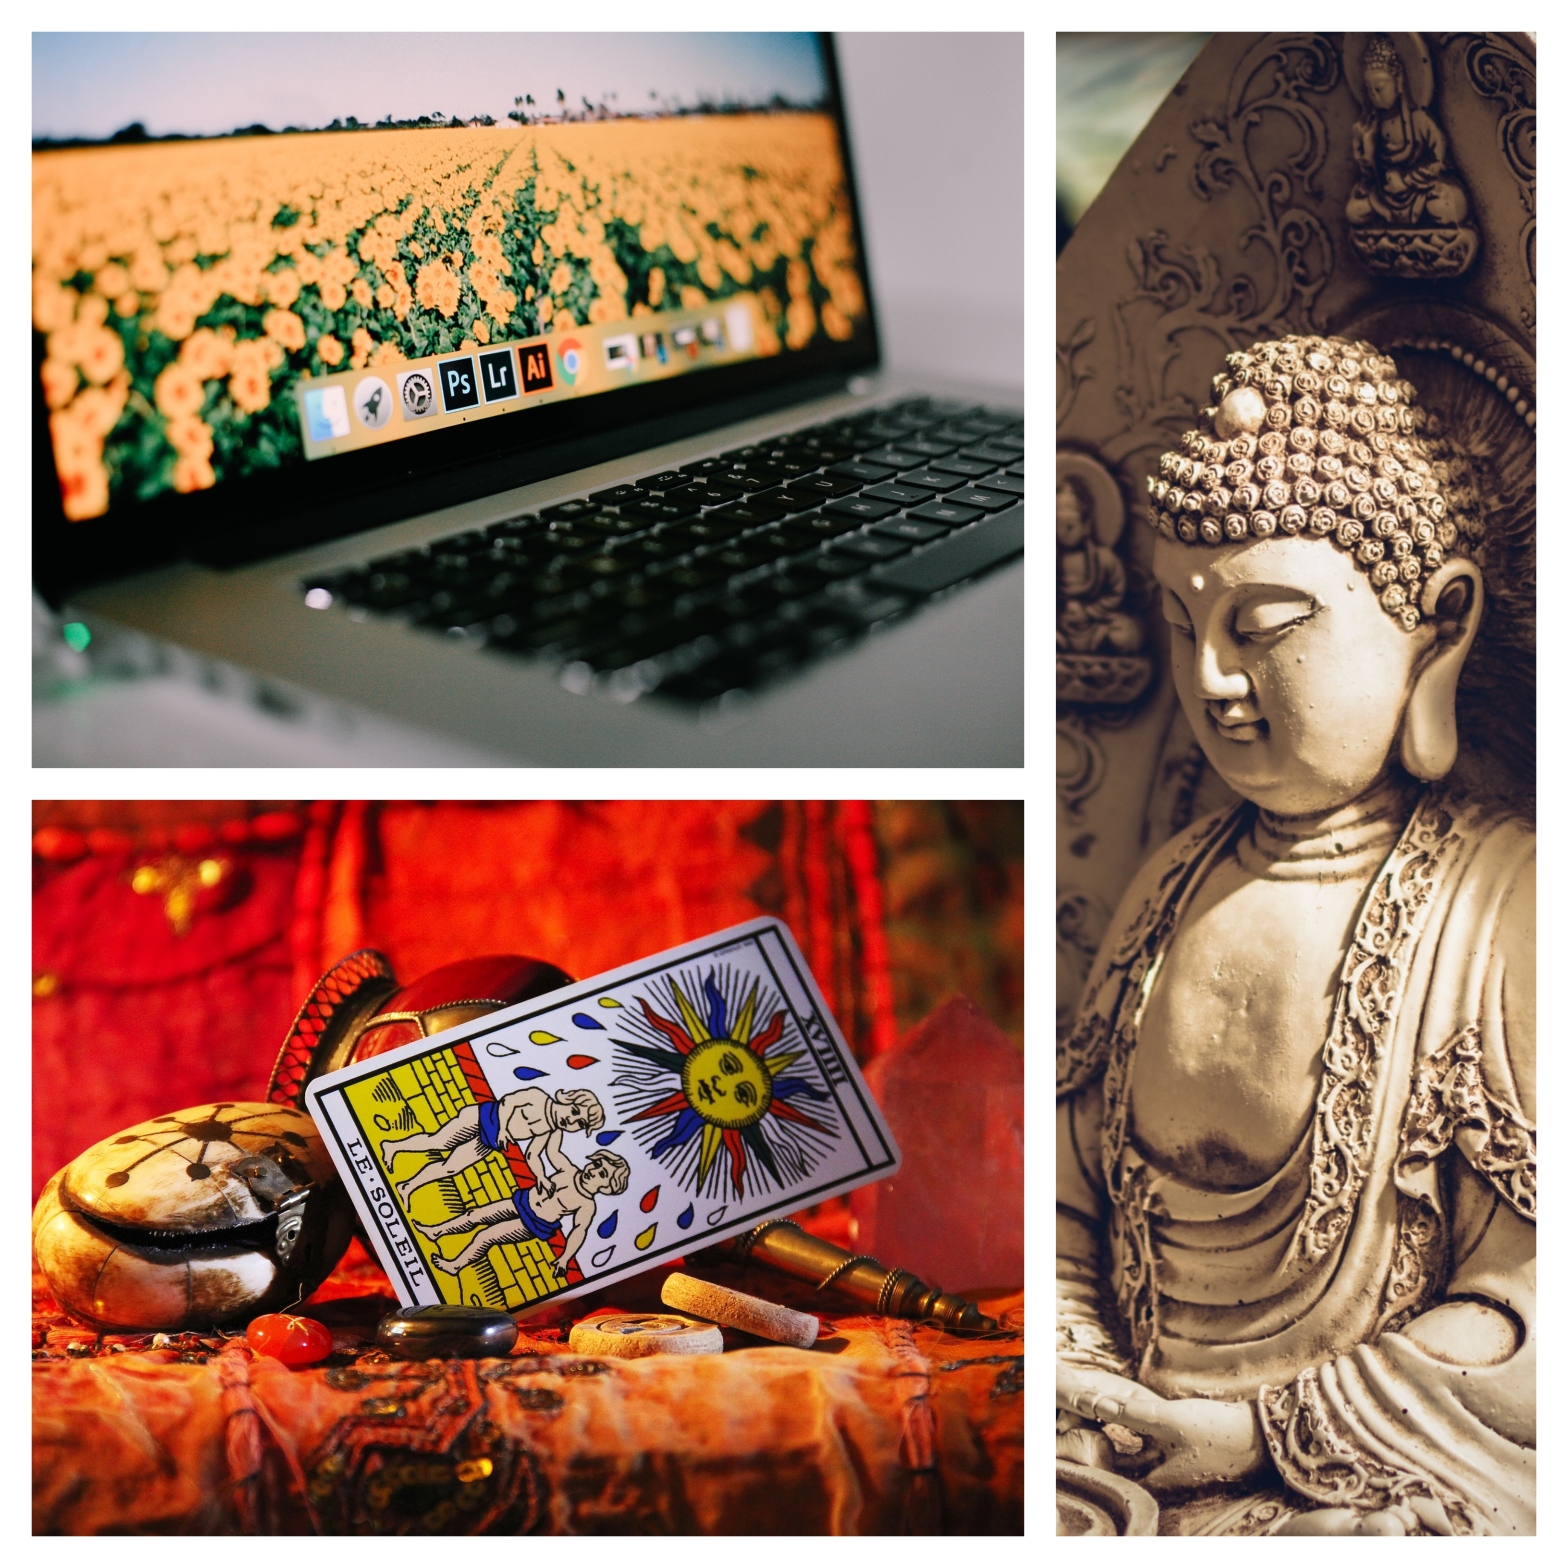 Predictions, PDF and Buddhism in AI